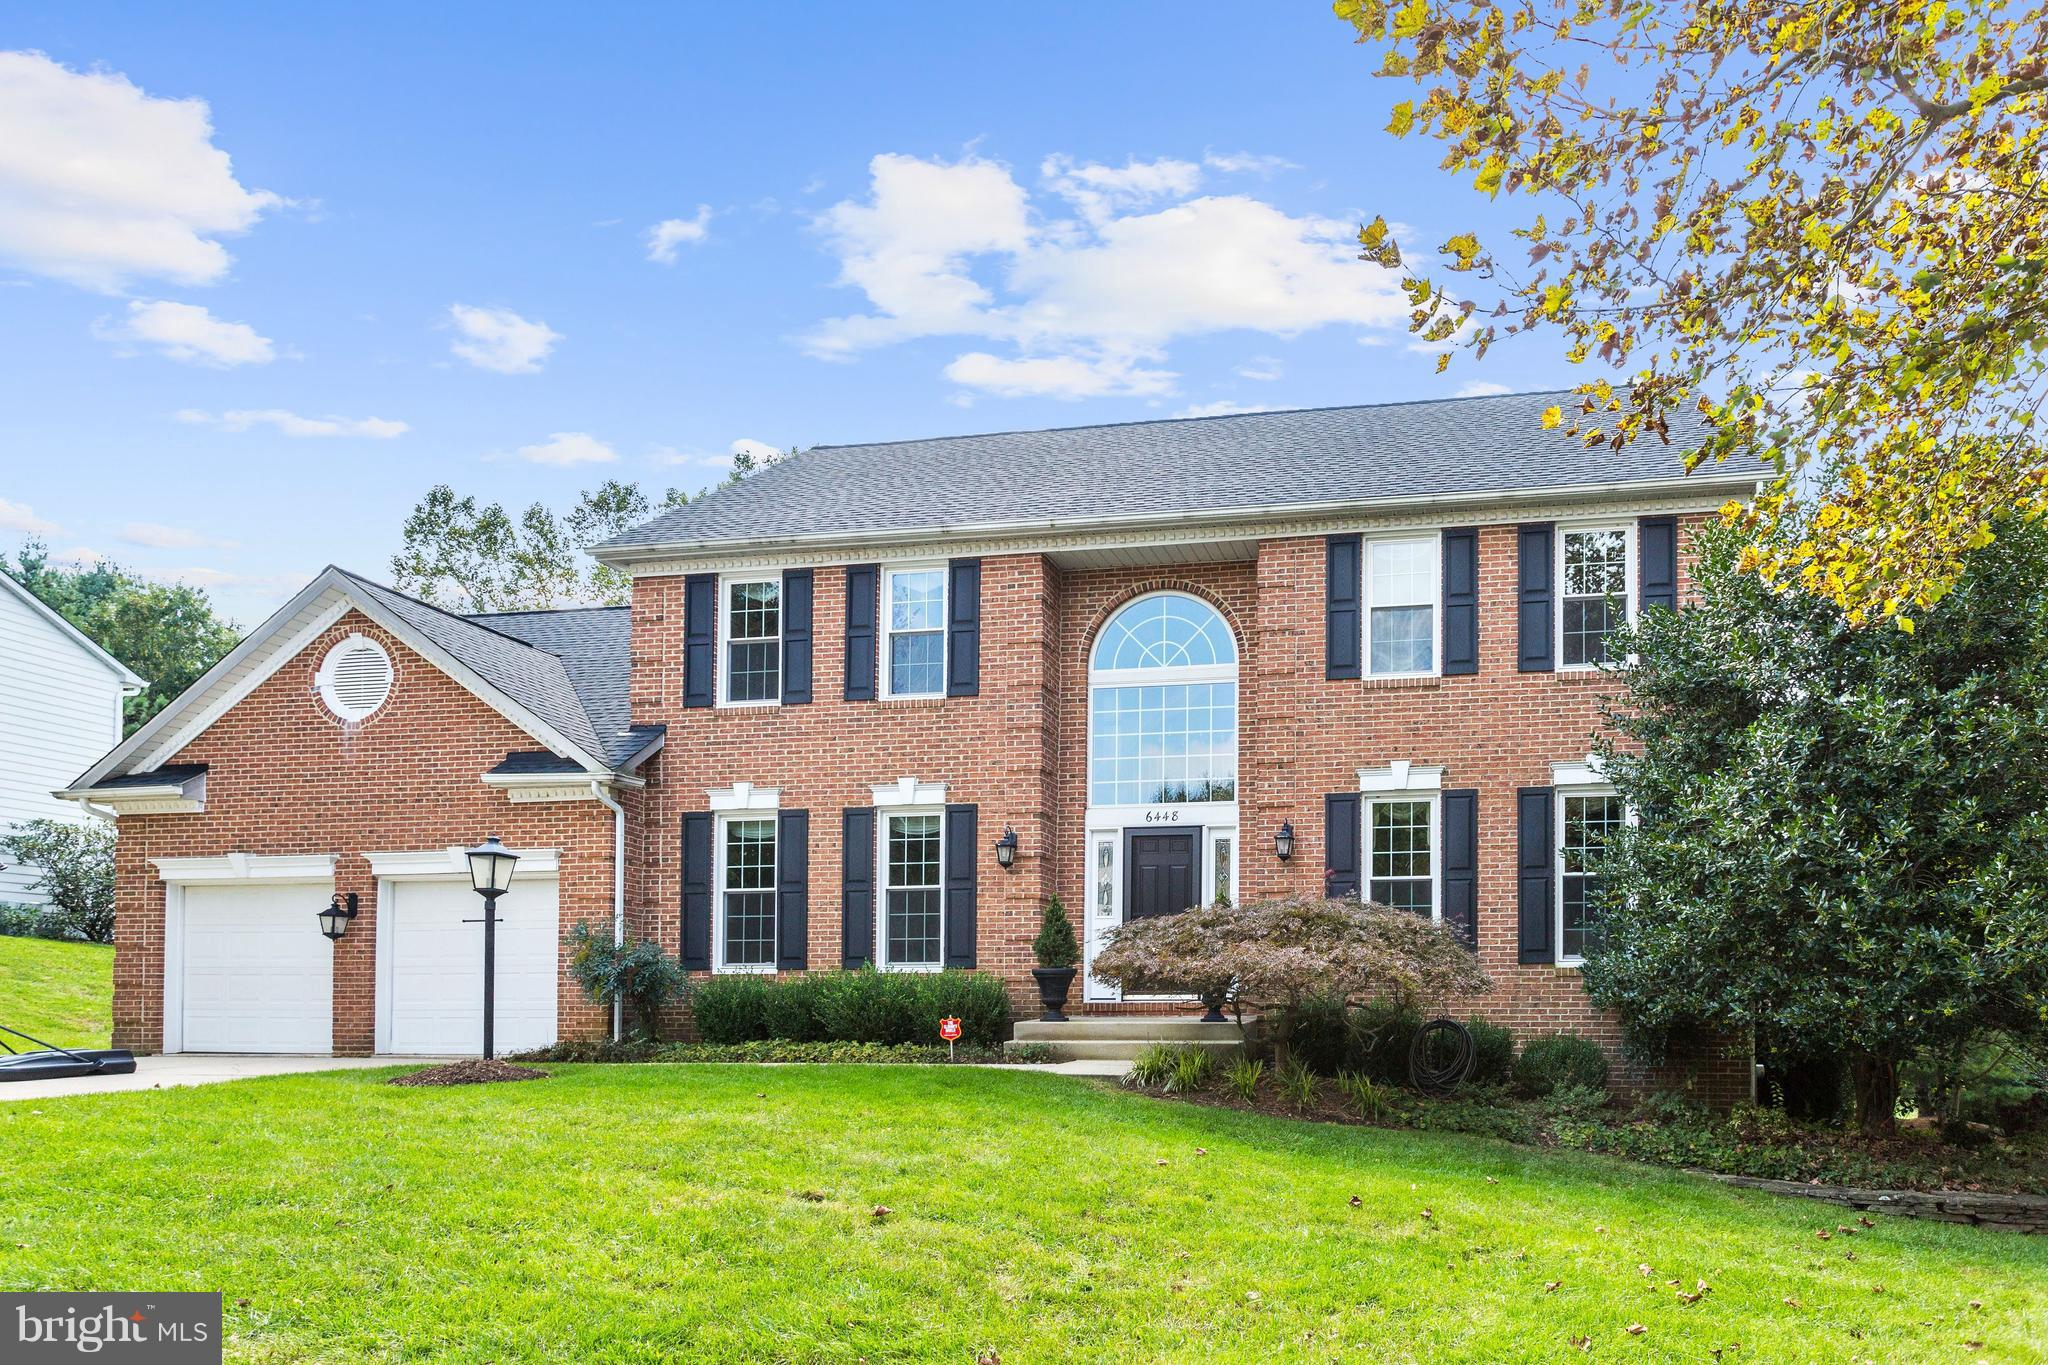 6448 RIVER RUN, COLUMBIA, MD 21044